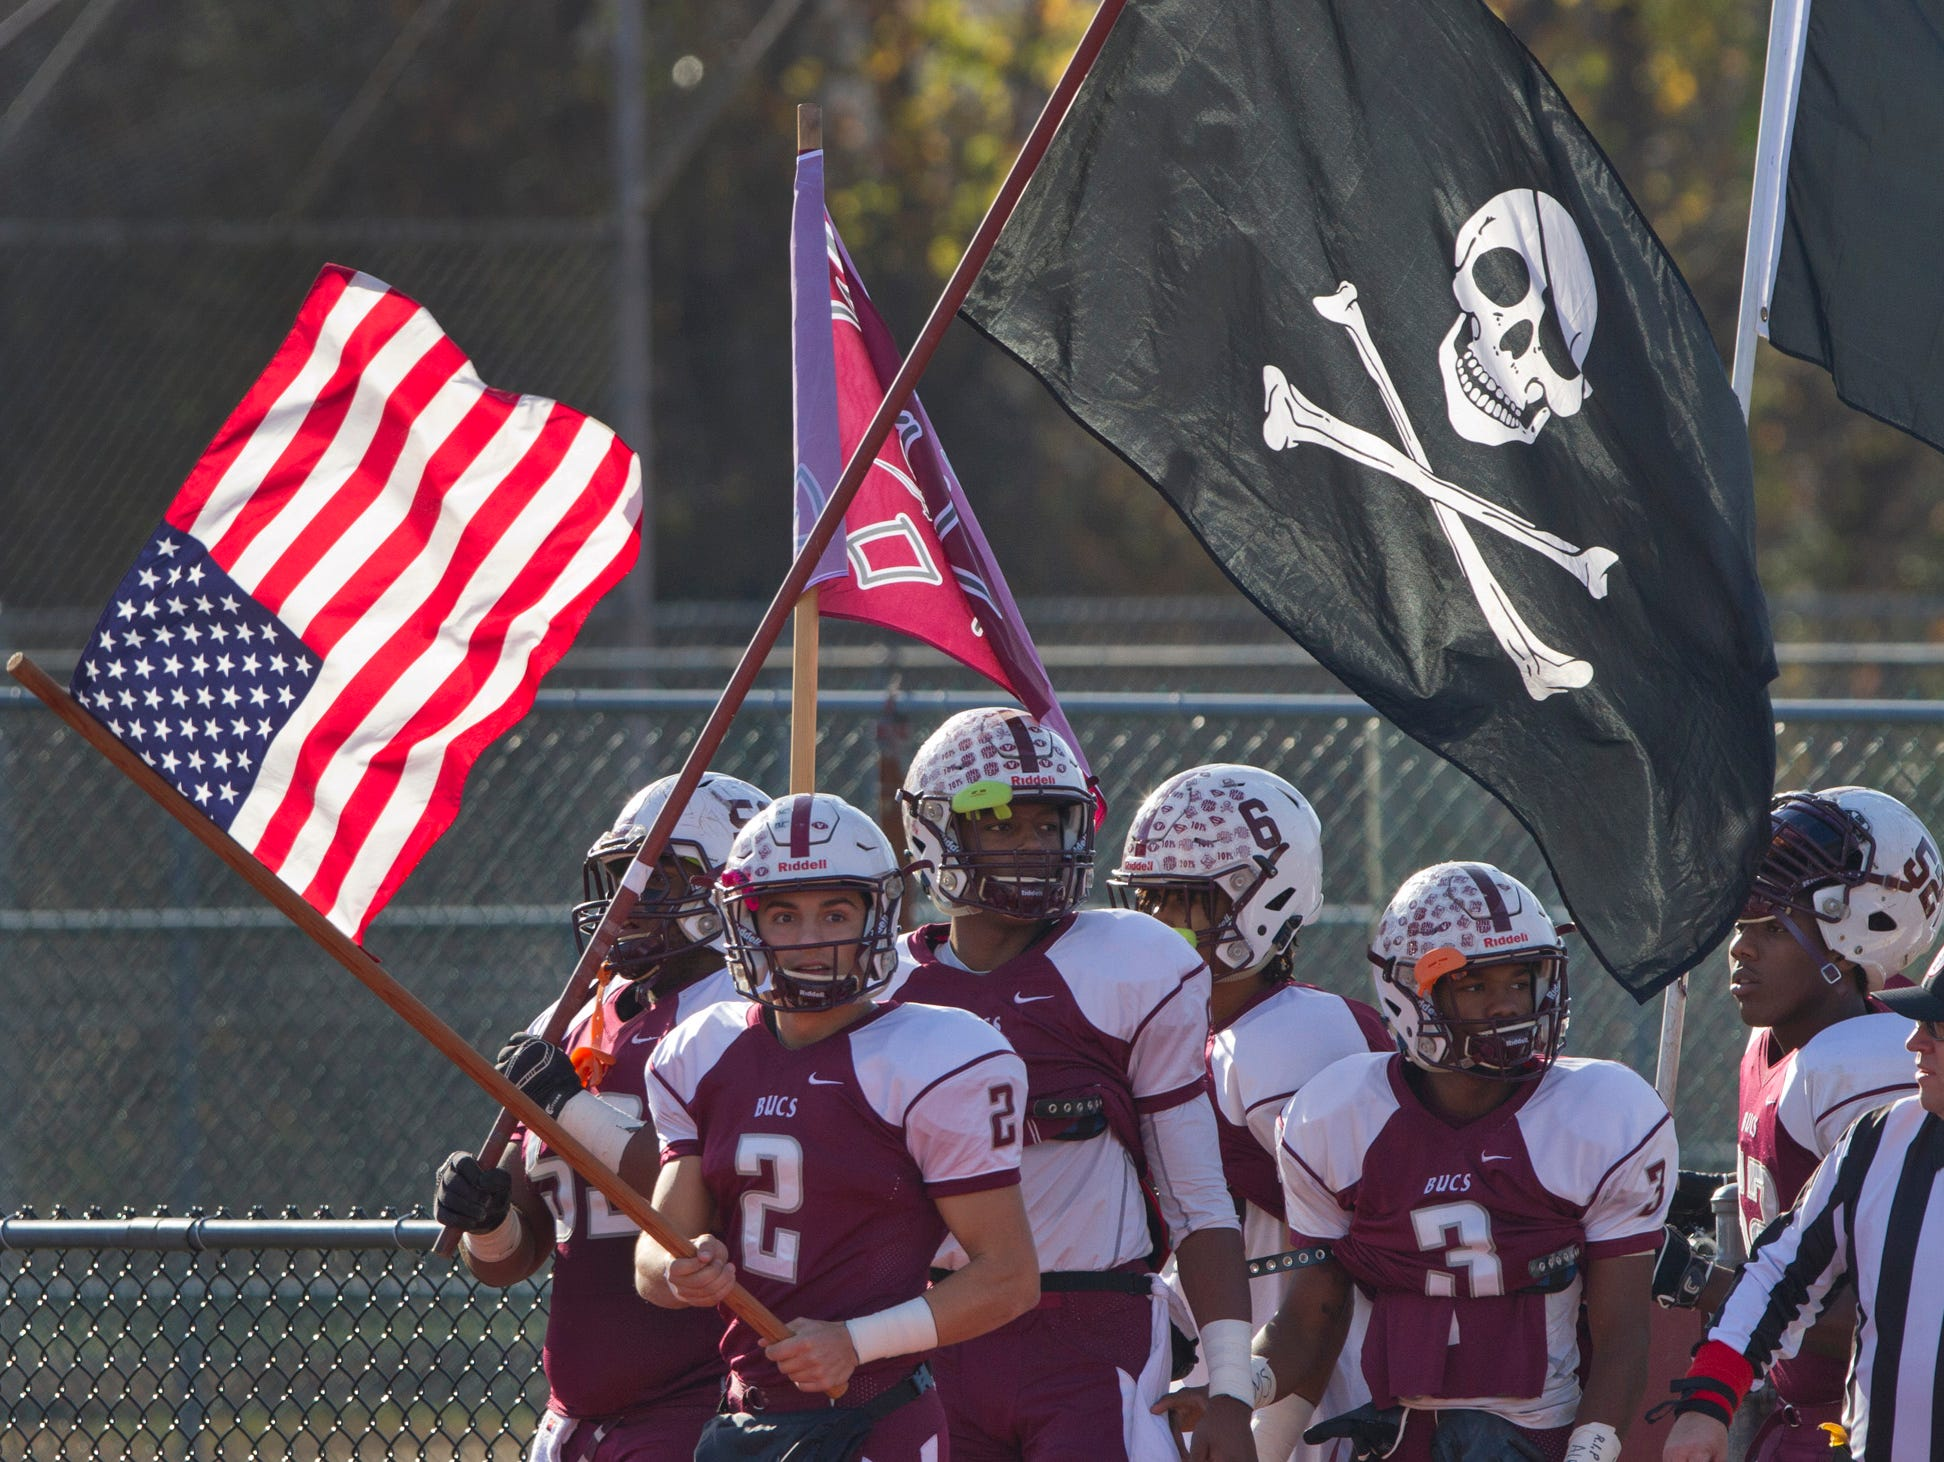 Red Bank RegionalJack Navitsky leads his team onto the field for the Long Branch vs Red Bank Regional Thanksgiving Day Football game in Red Bank NJ on November 26, 2015.